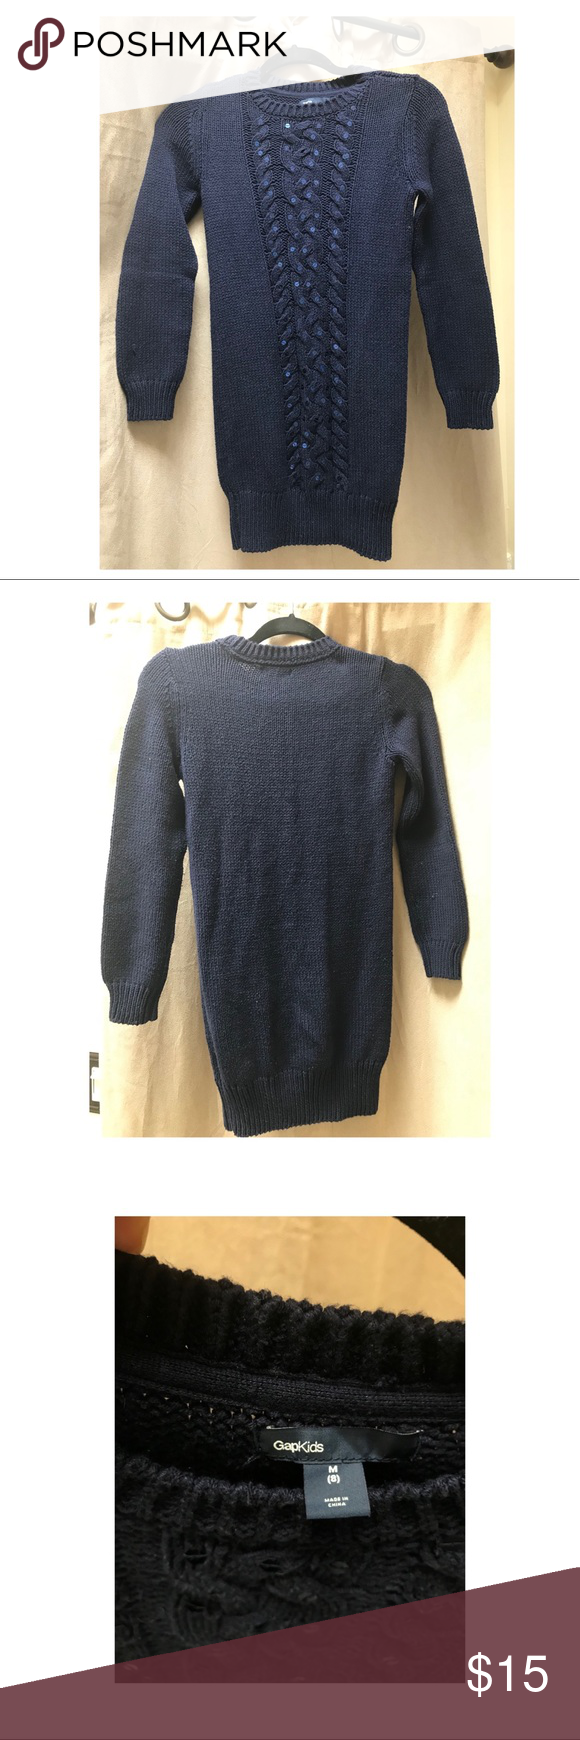 Girls Navy Blue Sweater Dress Gap Kids Navy Blue Sweater Dress ...